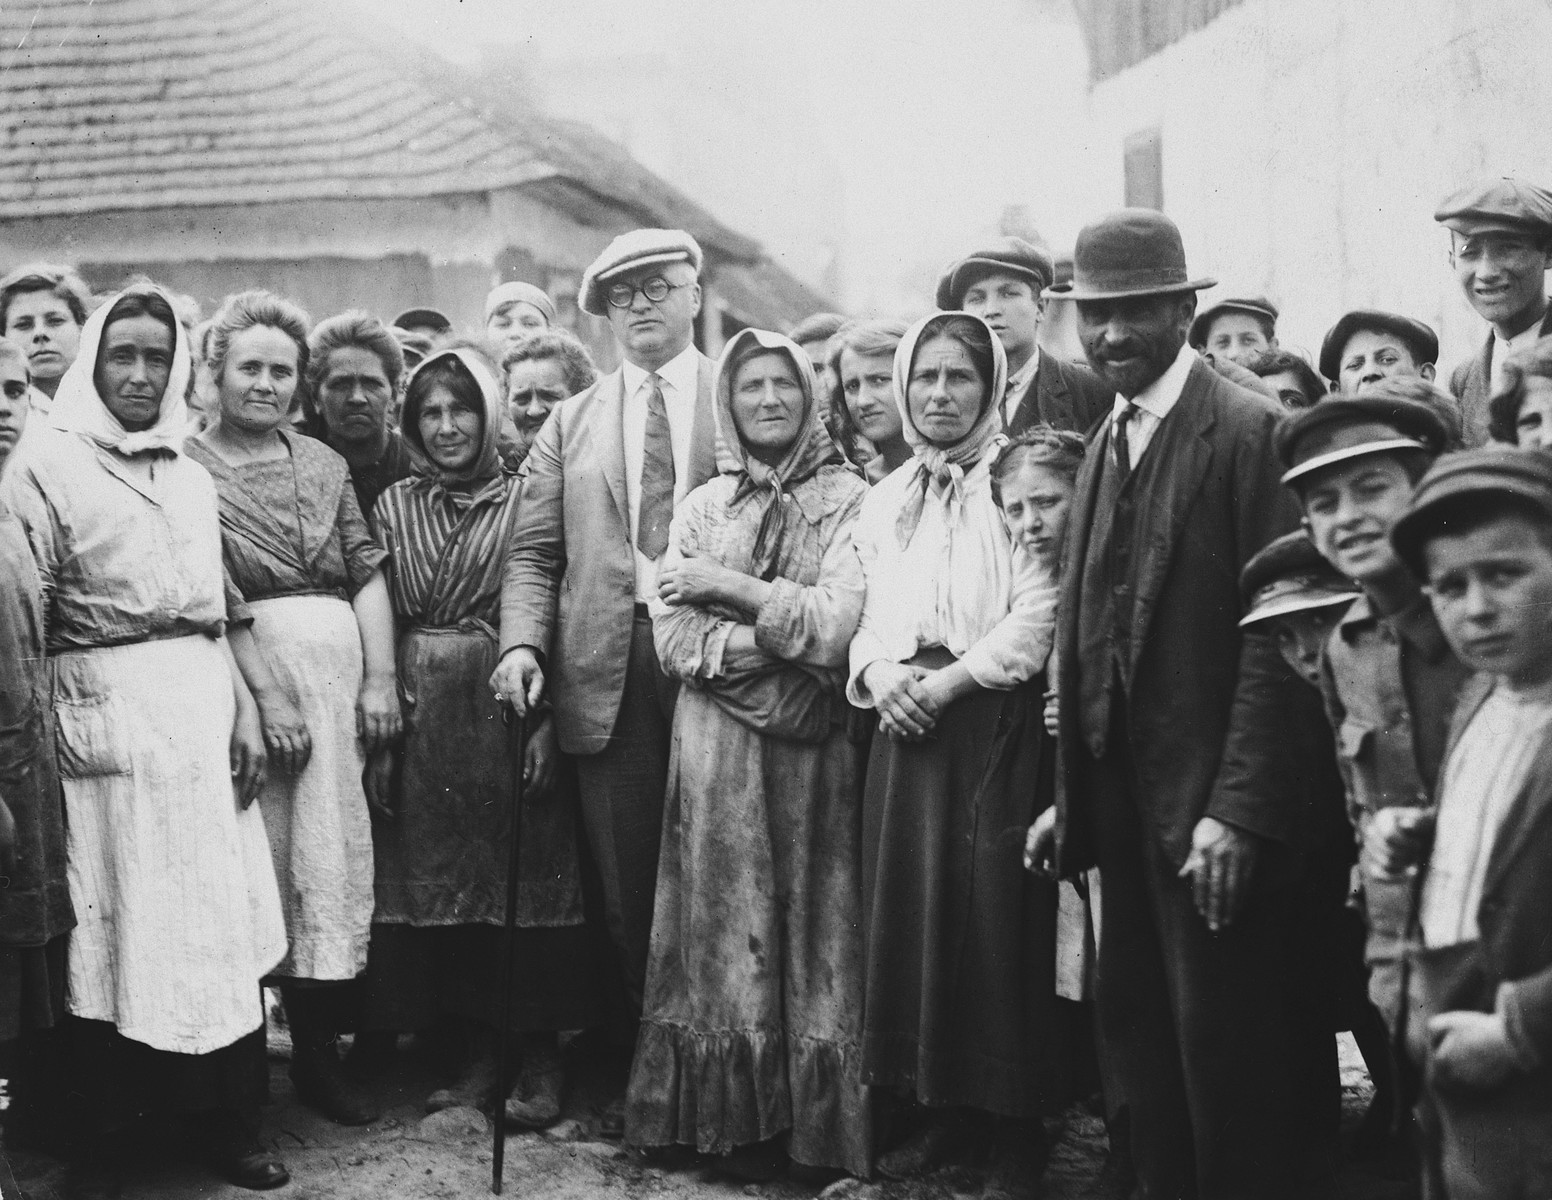 Group portrait of Jewish friends and relatives standing in the town square of Drohobycz, taken on the occasion of a visit by Harry Handel (former resident of Drohobycz) from America.  Handel is pictured standing in the center left, holding a walking stick.